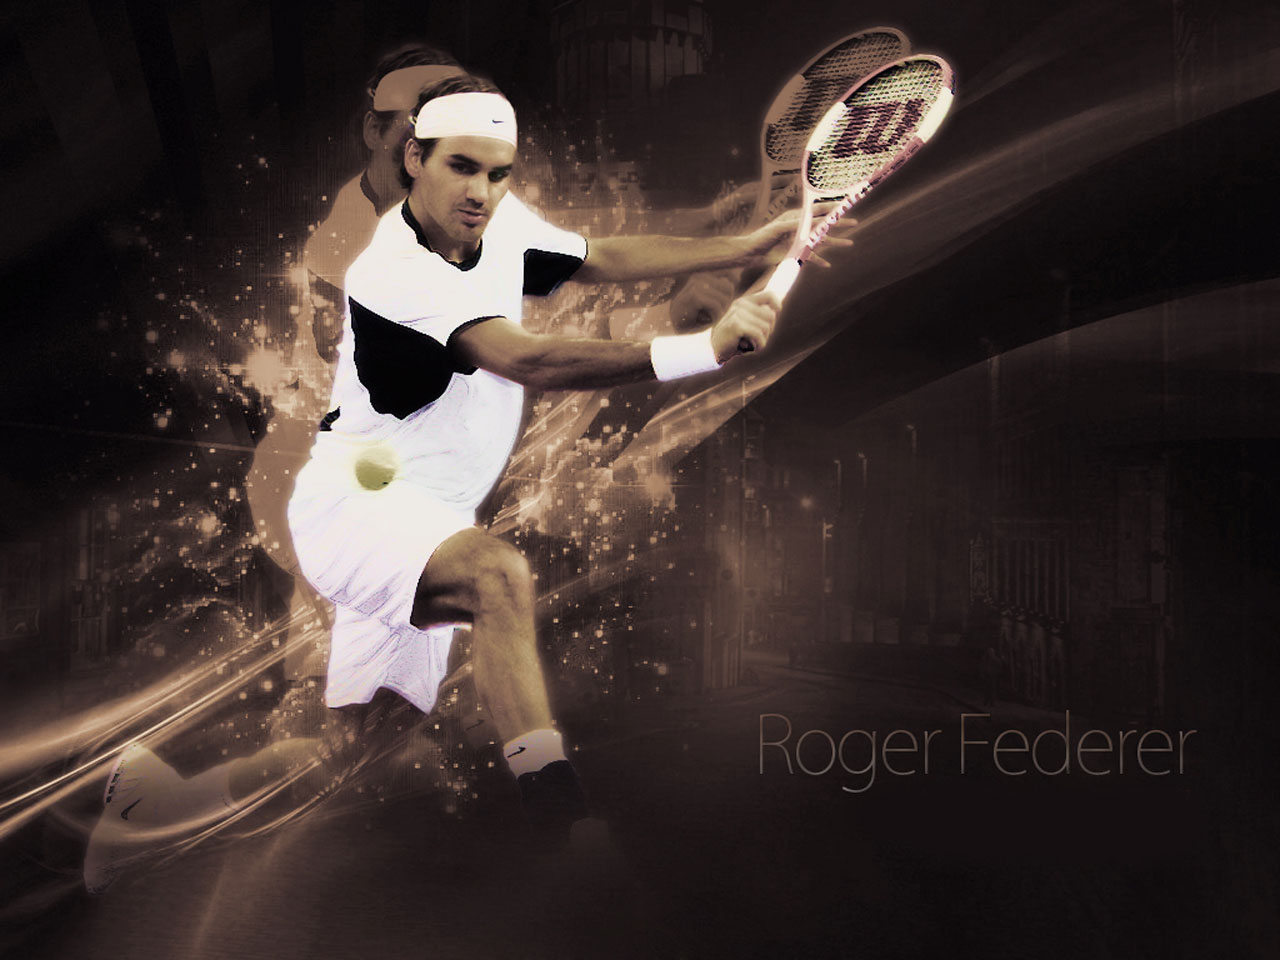 All Tennis Players Hd Wallpapers And Many More